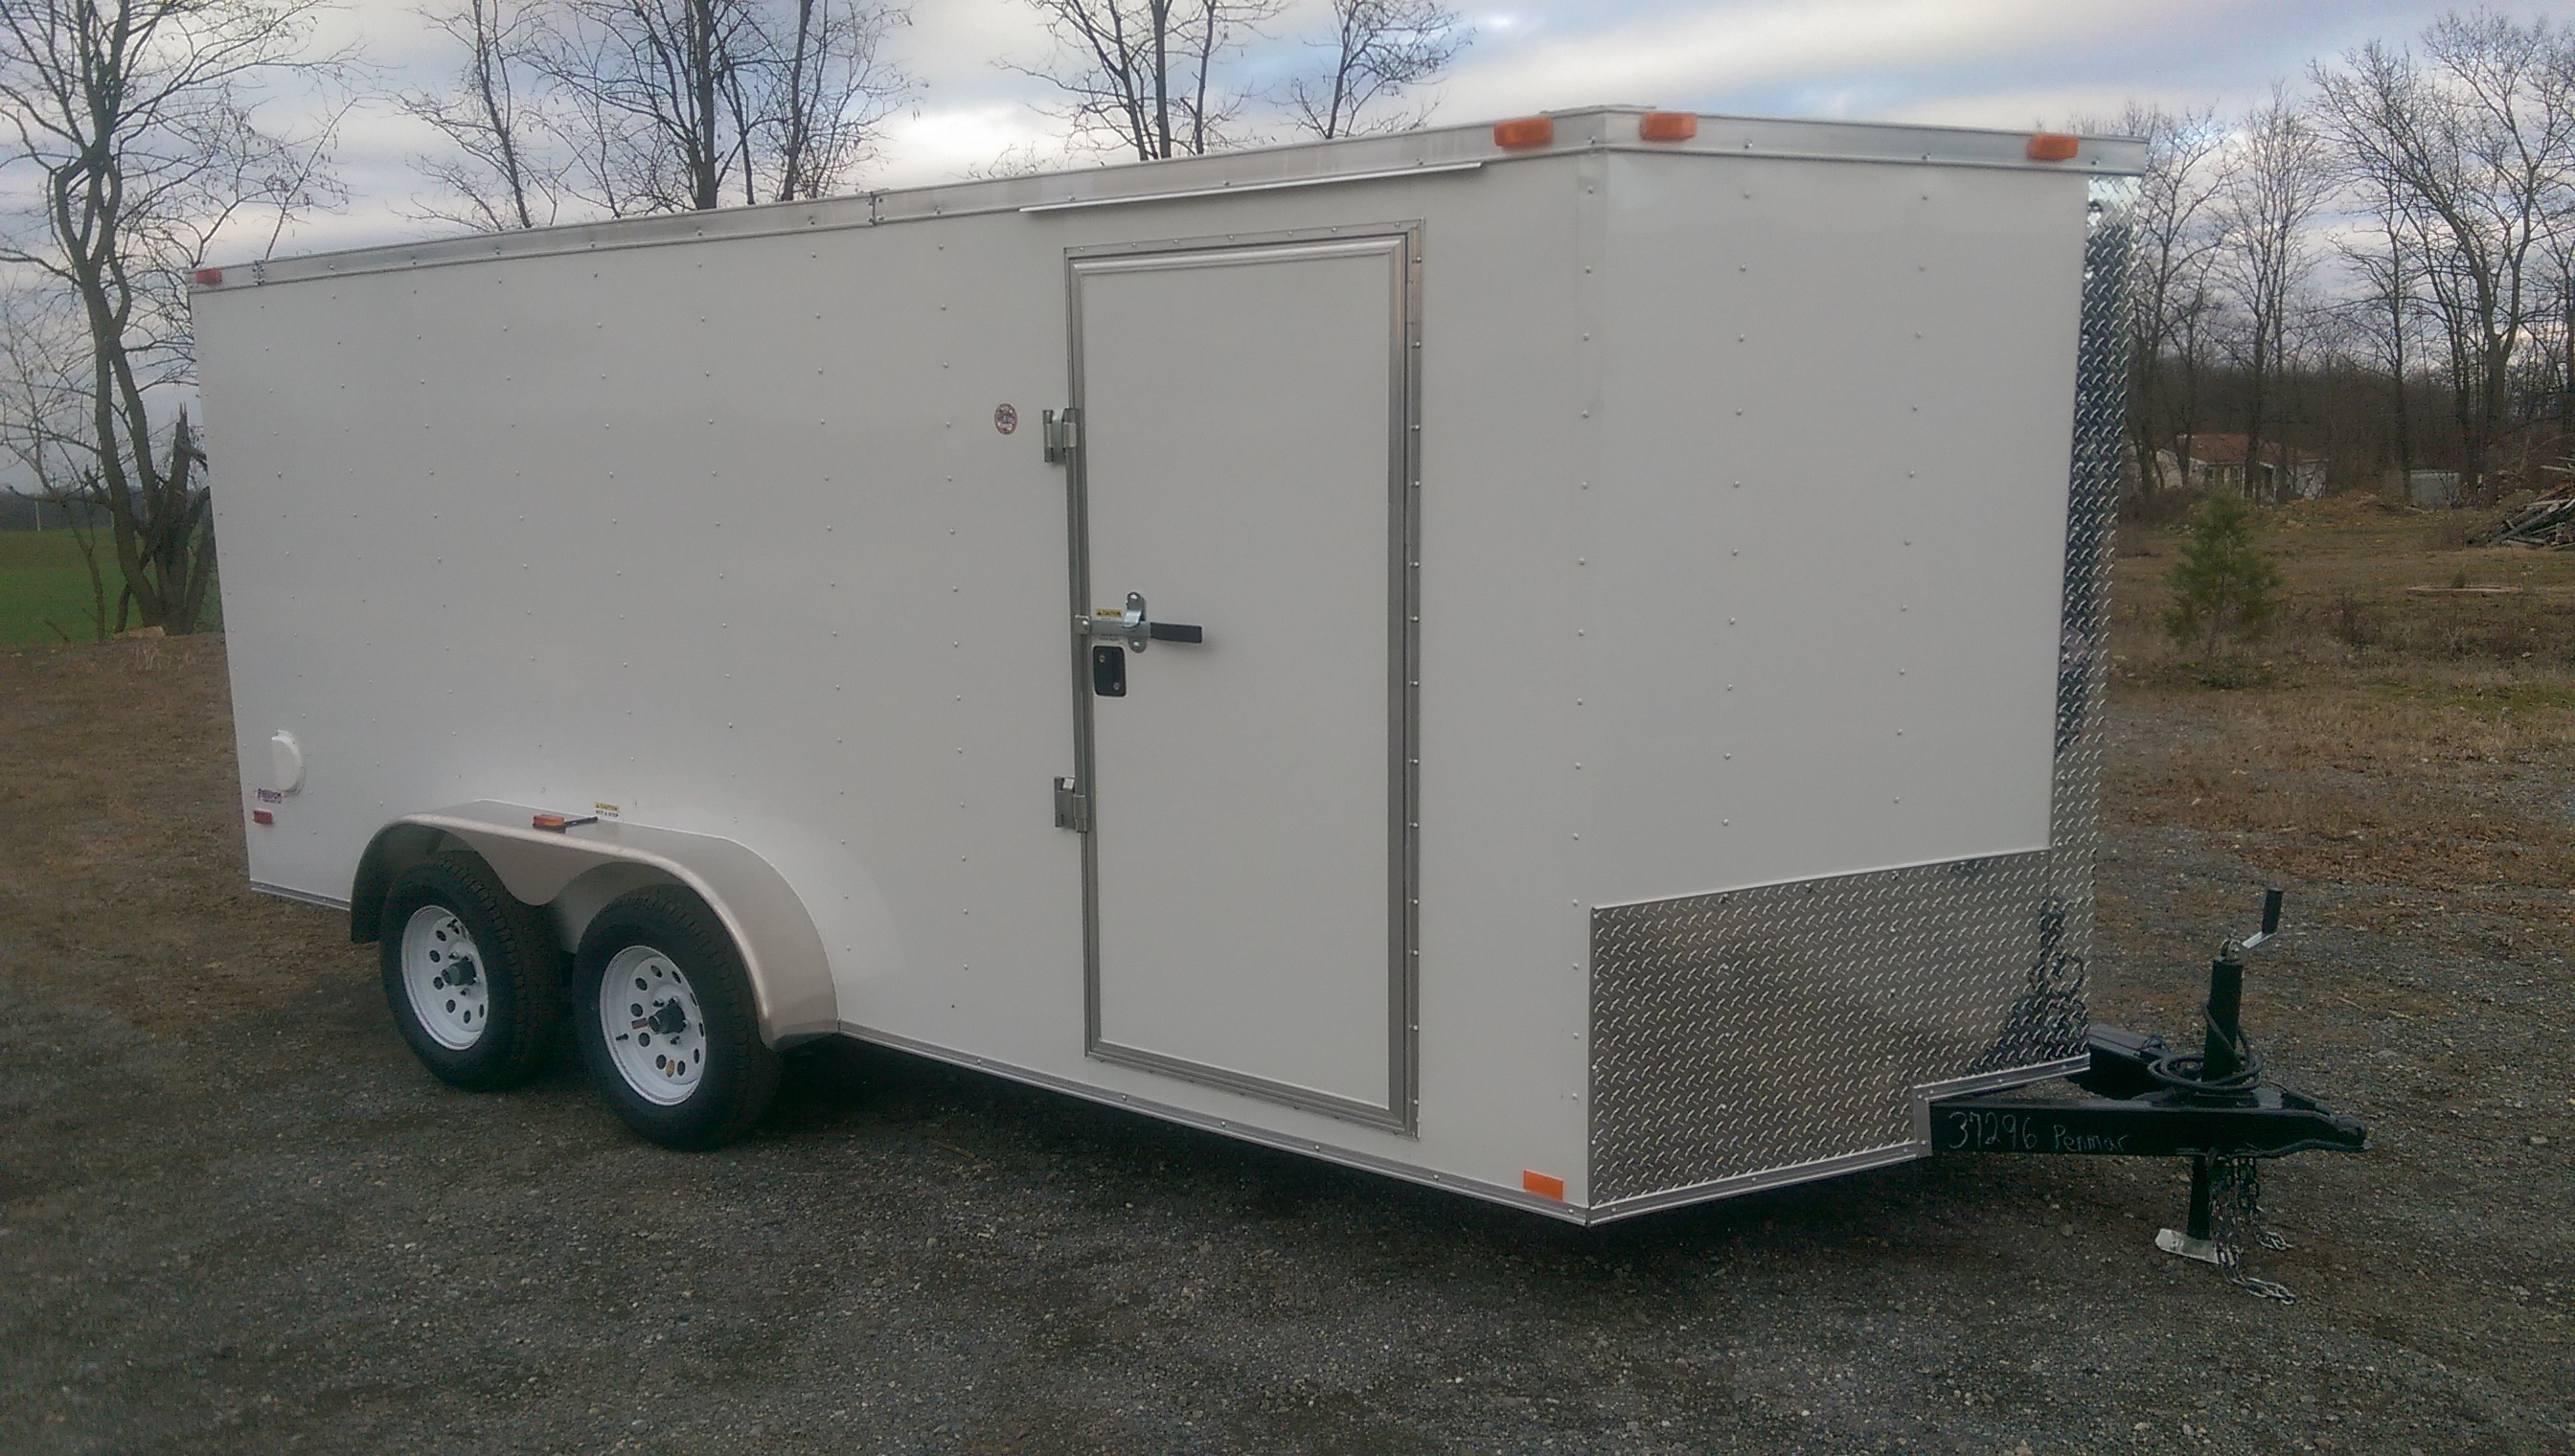 "Quantity: 1  Ramp Rear Door V-Nose Plywood Flooring 32"" Side Door Flush Lock and Bar Lock on Side Door Rock Guard Interior Height  - 75"" (3"" Extra Height) Aluminum Exterior 7-Way Plug  <strong>Cash Price: $4,380</strong>  *Full Purchase Price does not include Title Fees and Taxes *3% Credit Card Surcharge added to Credit Card Purchases  	Financing not available on Freedom Trailers"